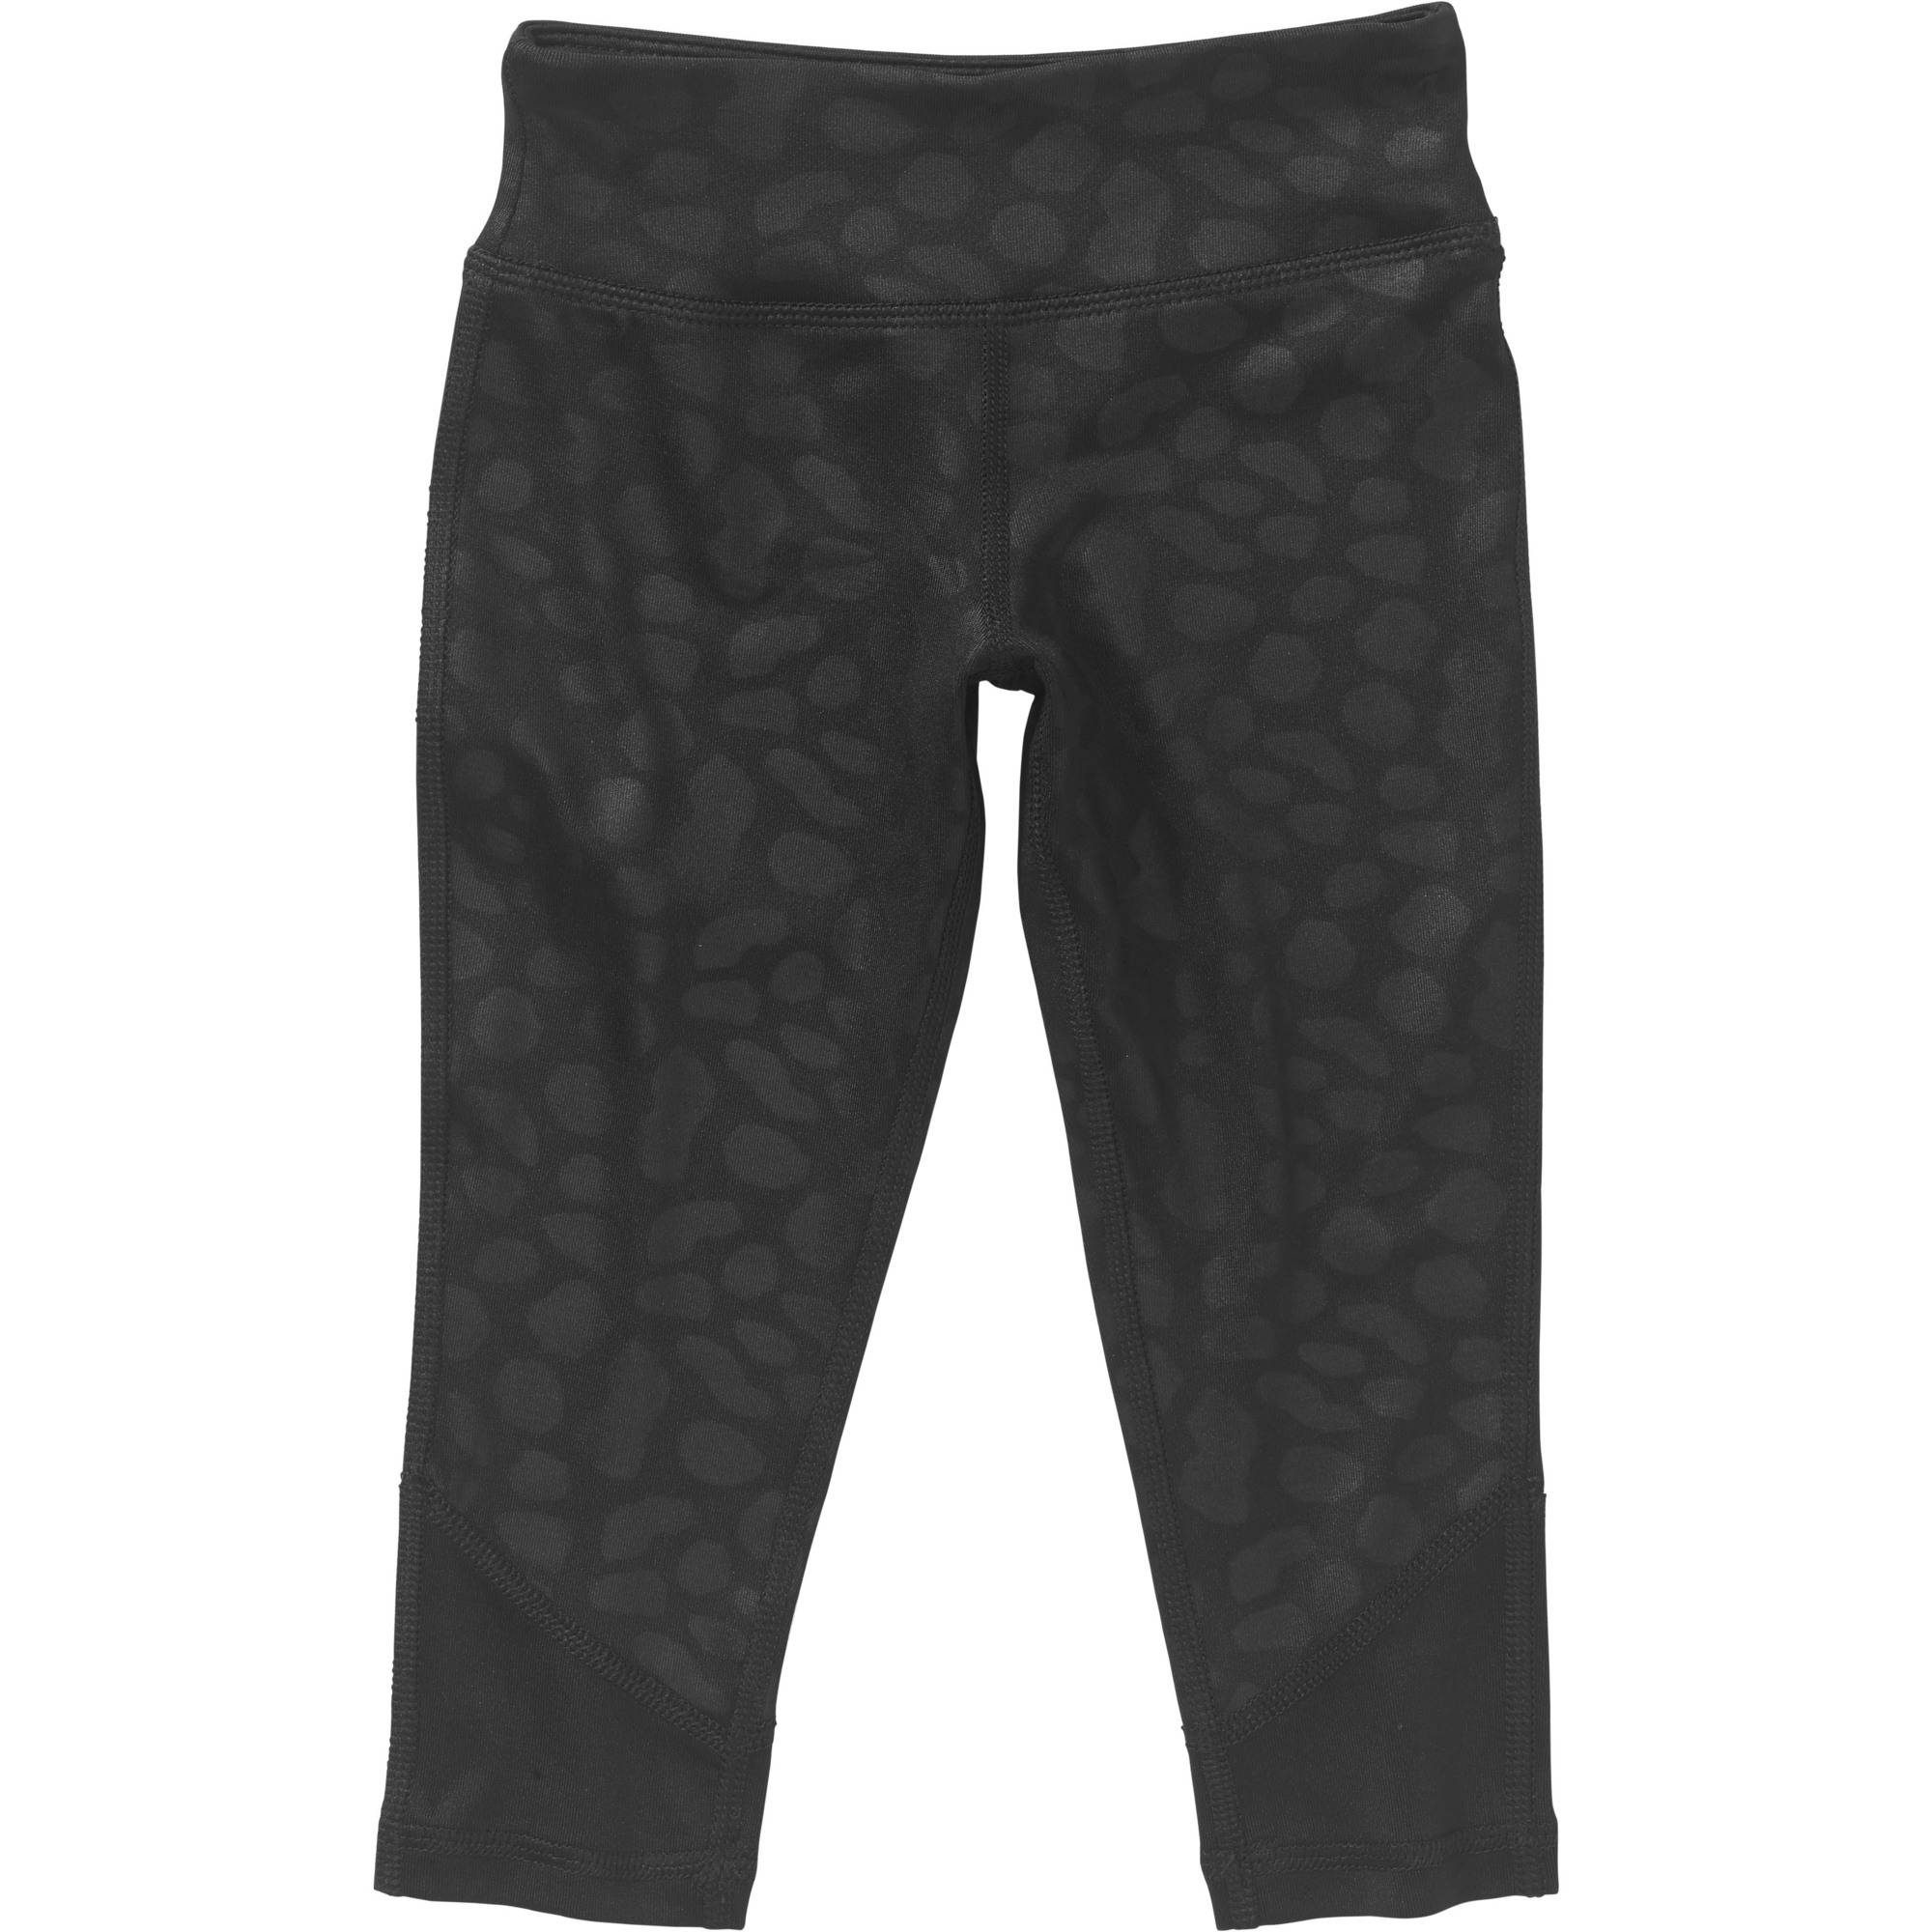 Danskin Now Girls' Performance Yoga Capri - Walmart.com